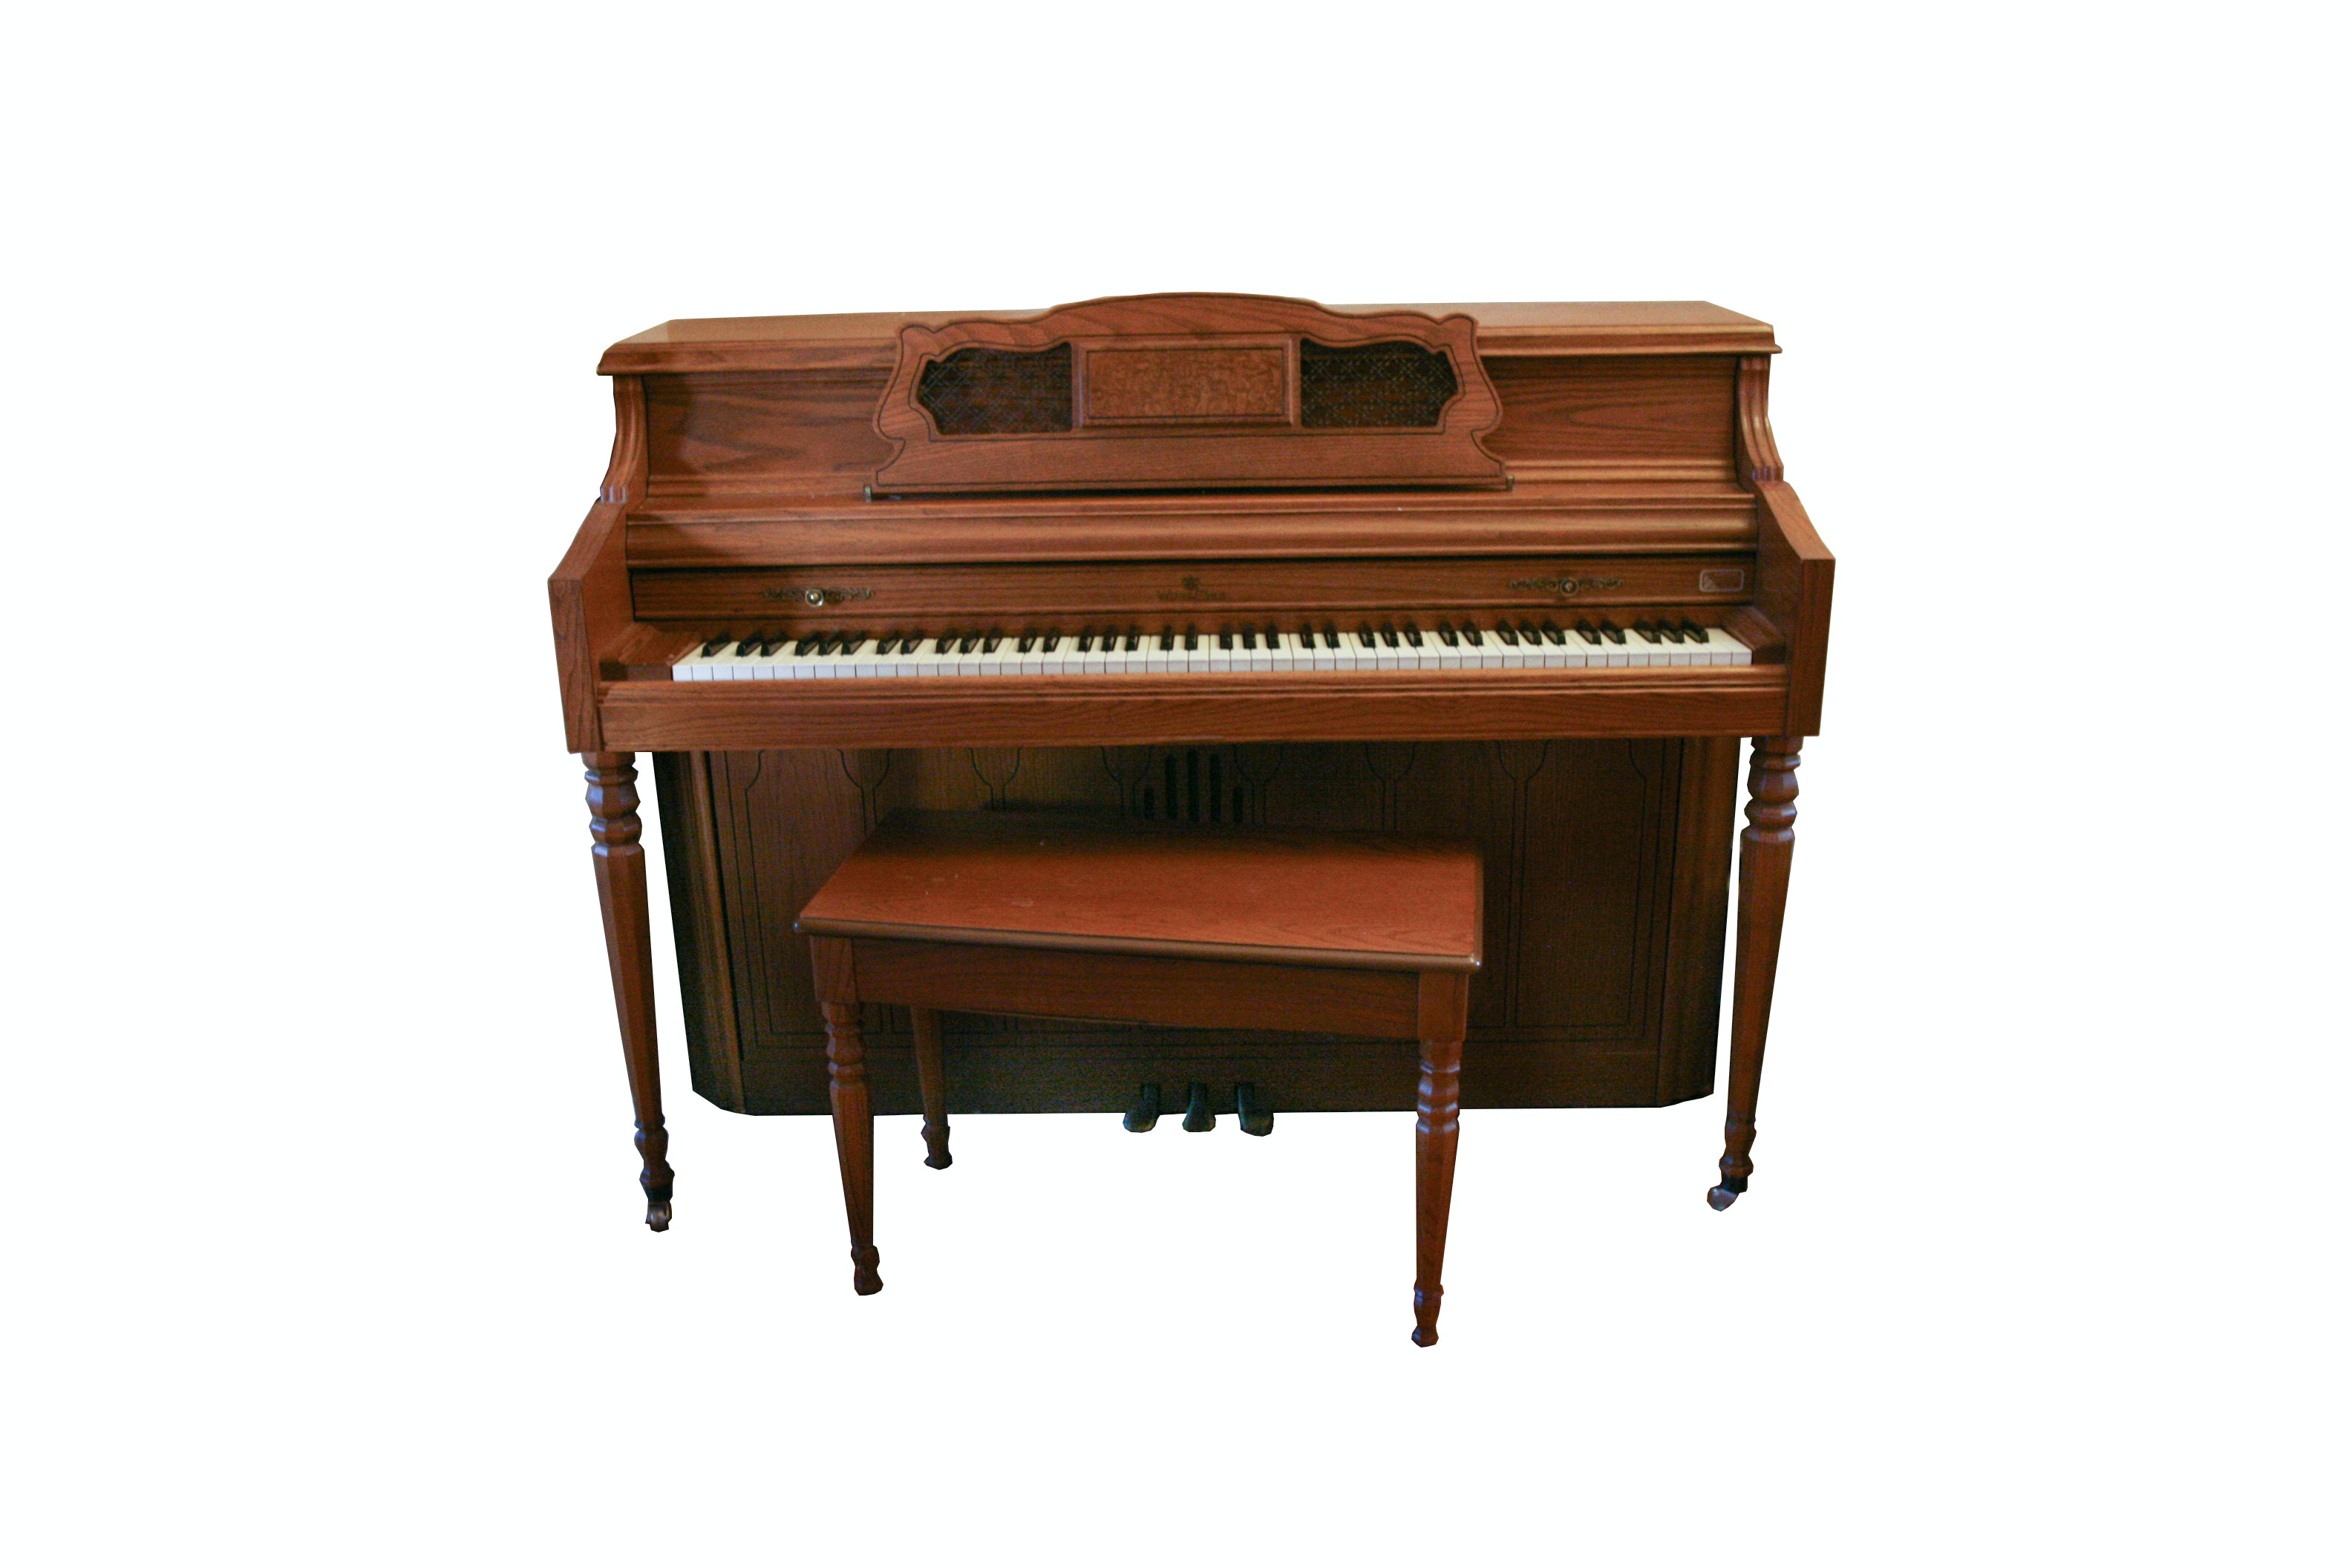 Vintage Wurlitzer Console Piano with Bench